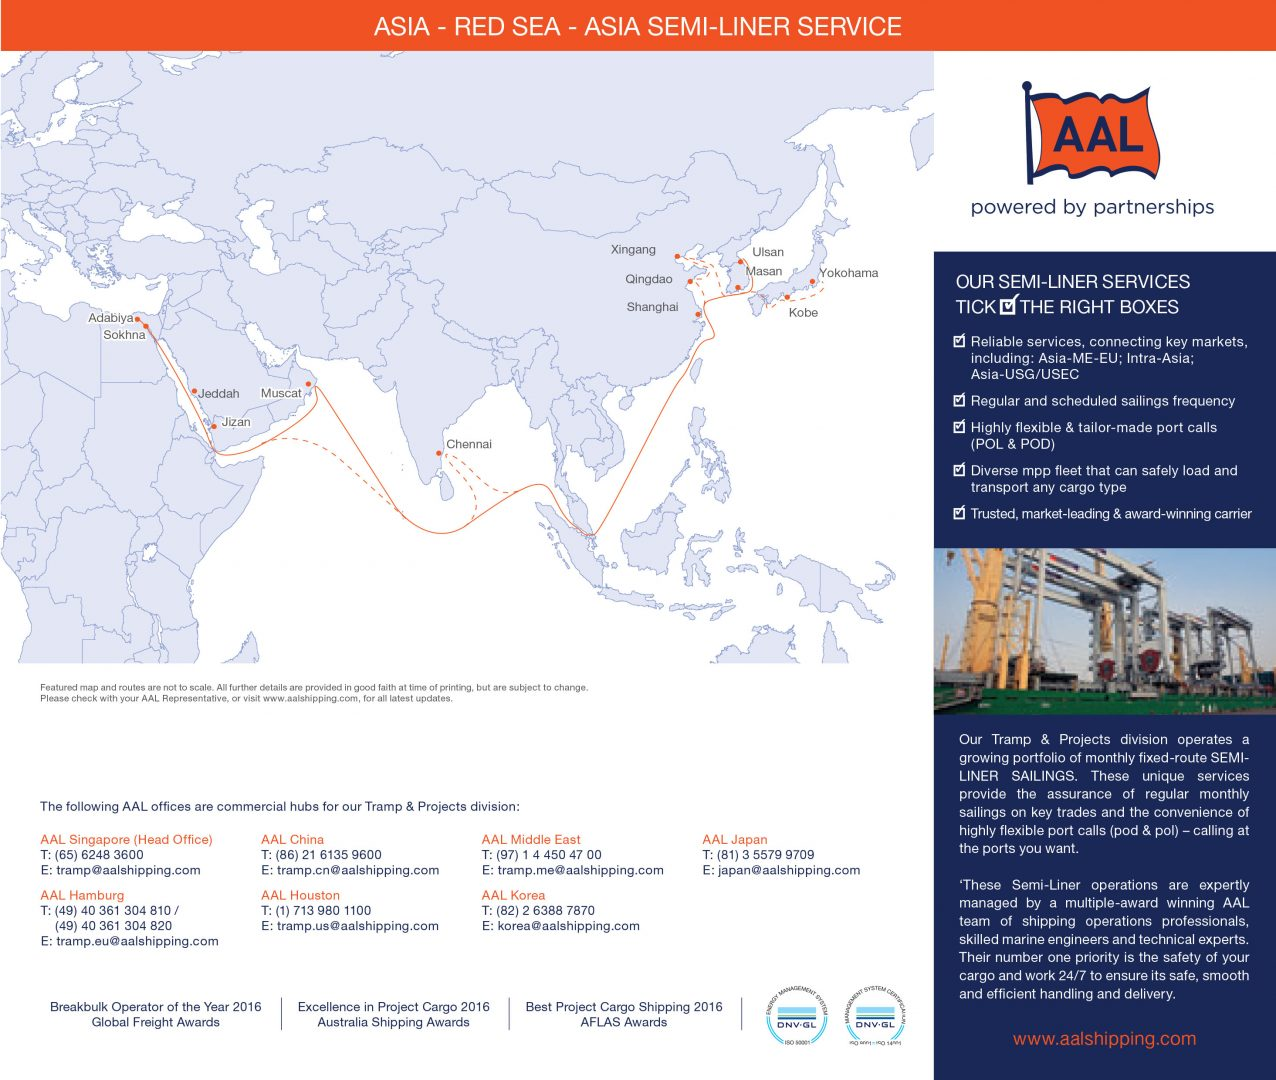 Asia - Red Sea - Asia Semi-Liner Service Route Map